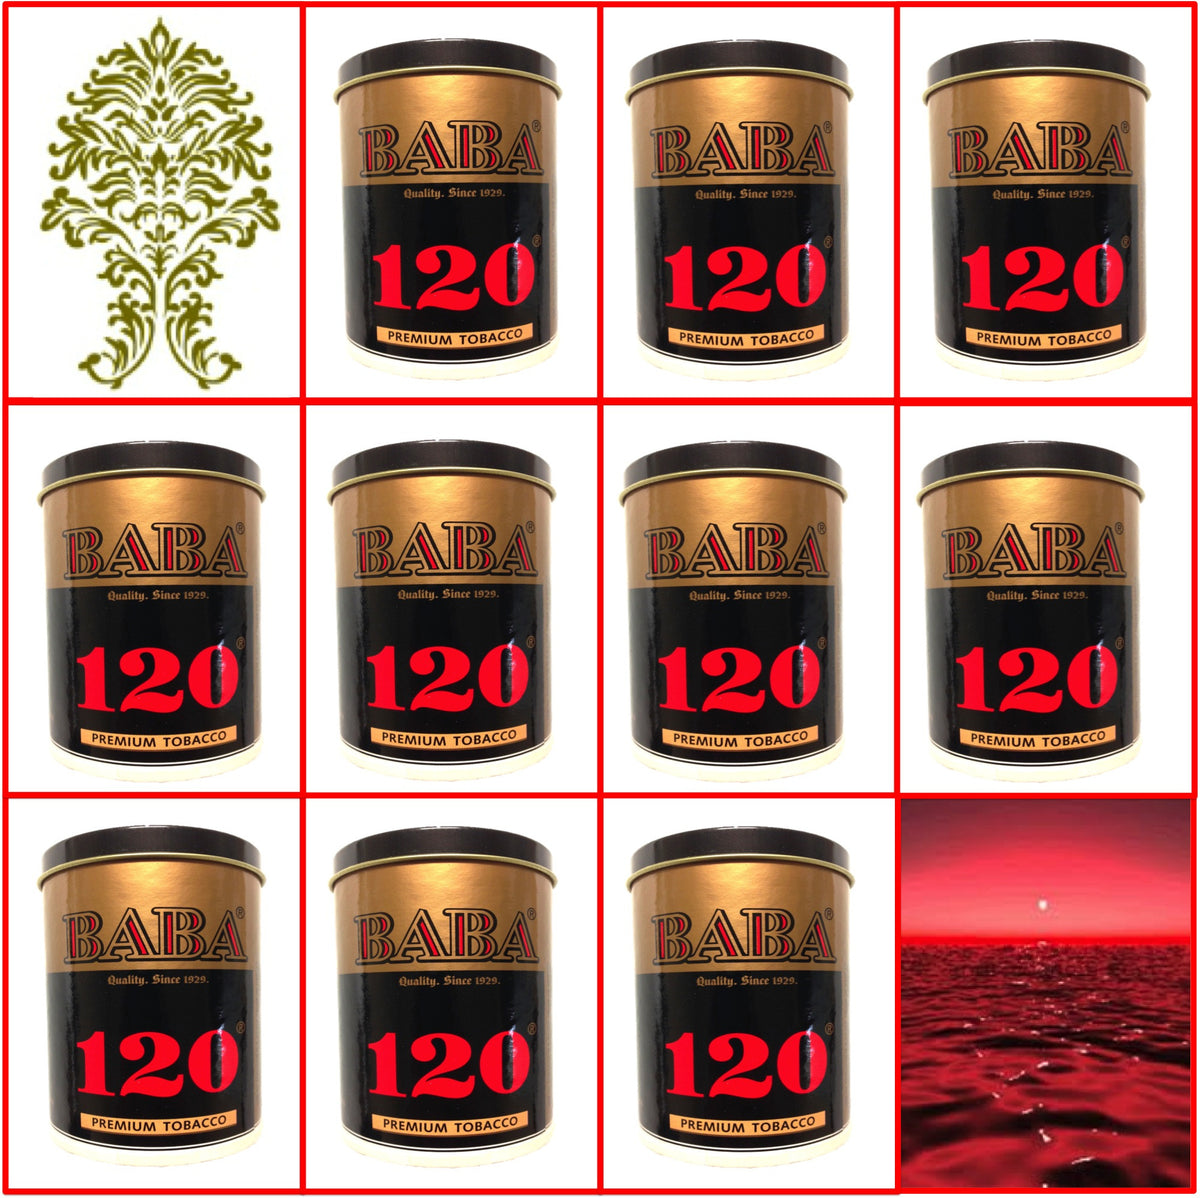 10 Cans Baba 120 (Silver) Premium Tobacco 50g Each October 2020